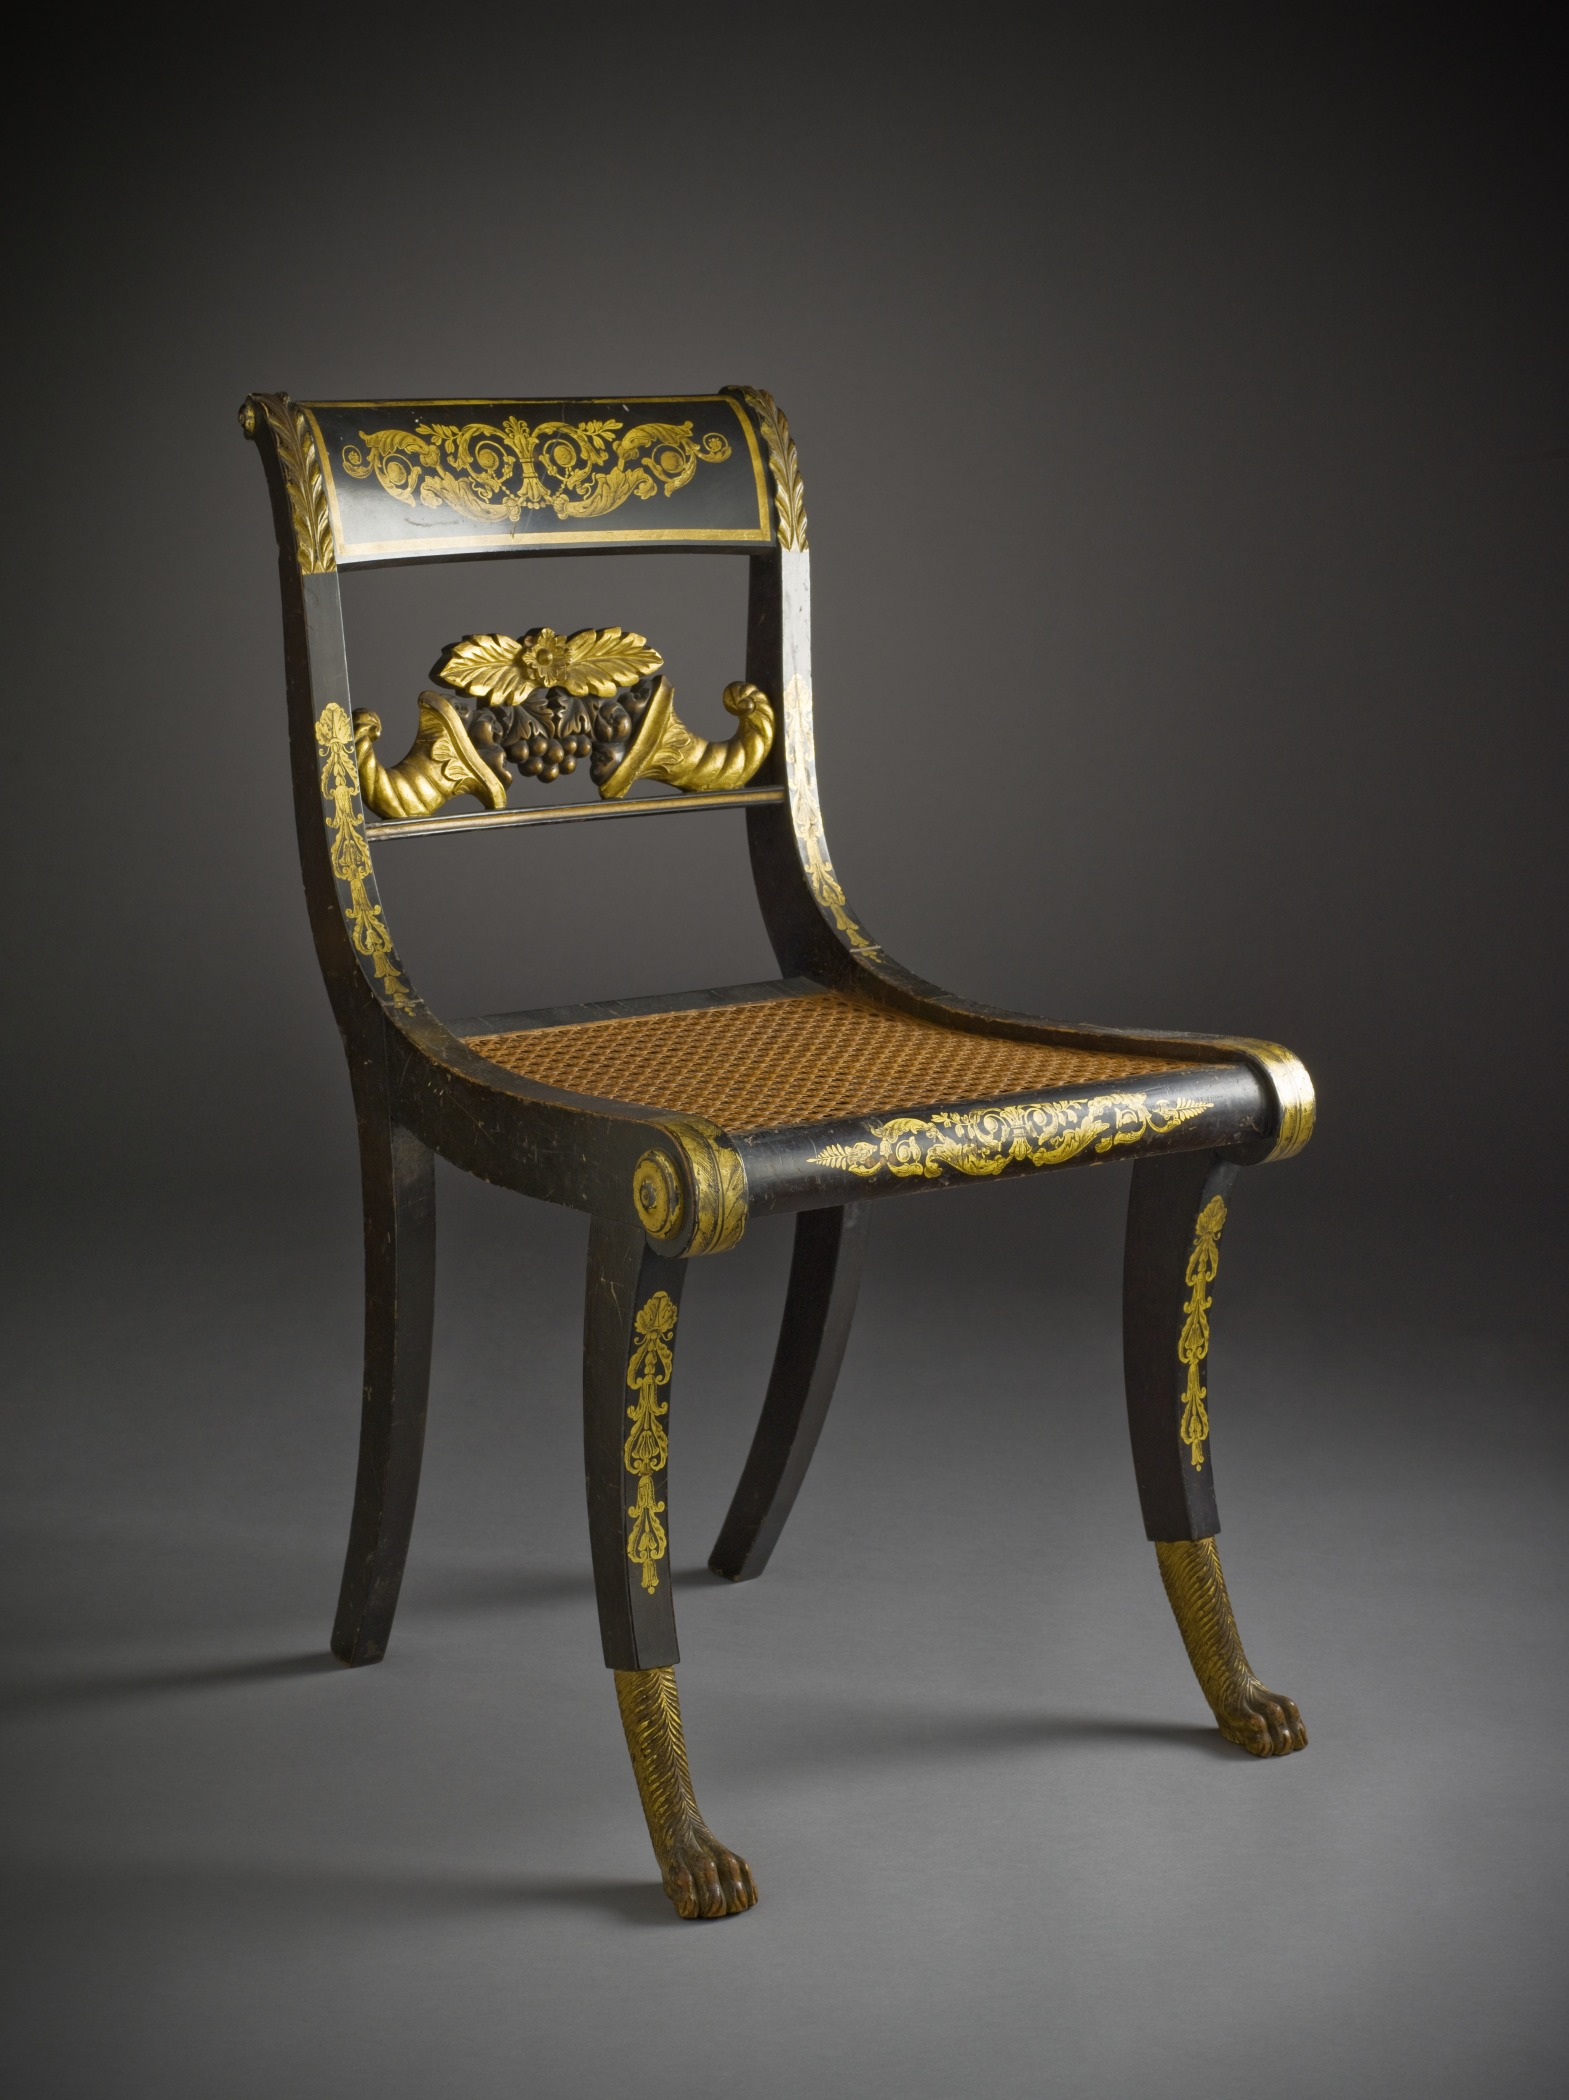 File:Pair of Side Chairs, 'Klismos' Style LACMA M.2006.51